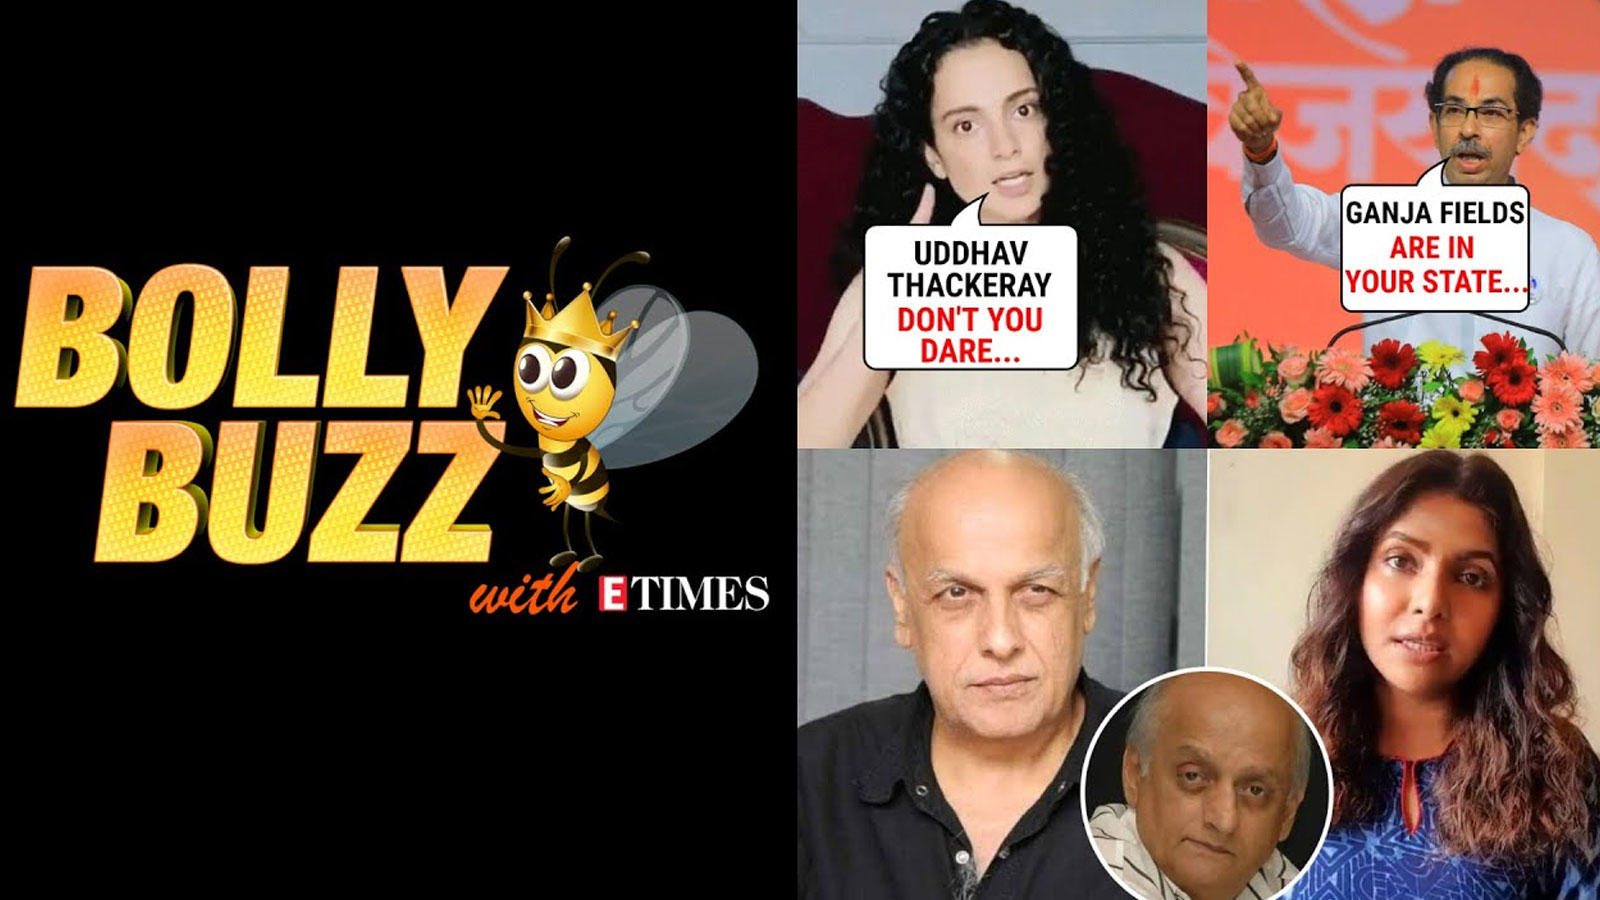 bolly-buzz-kangana-lashes-out-at-cm-uddhav-thackeray-mukesh-bhatt-slams-luviena-lodhs-allegations